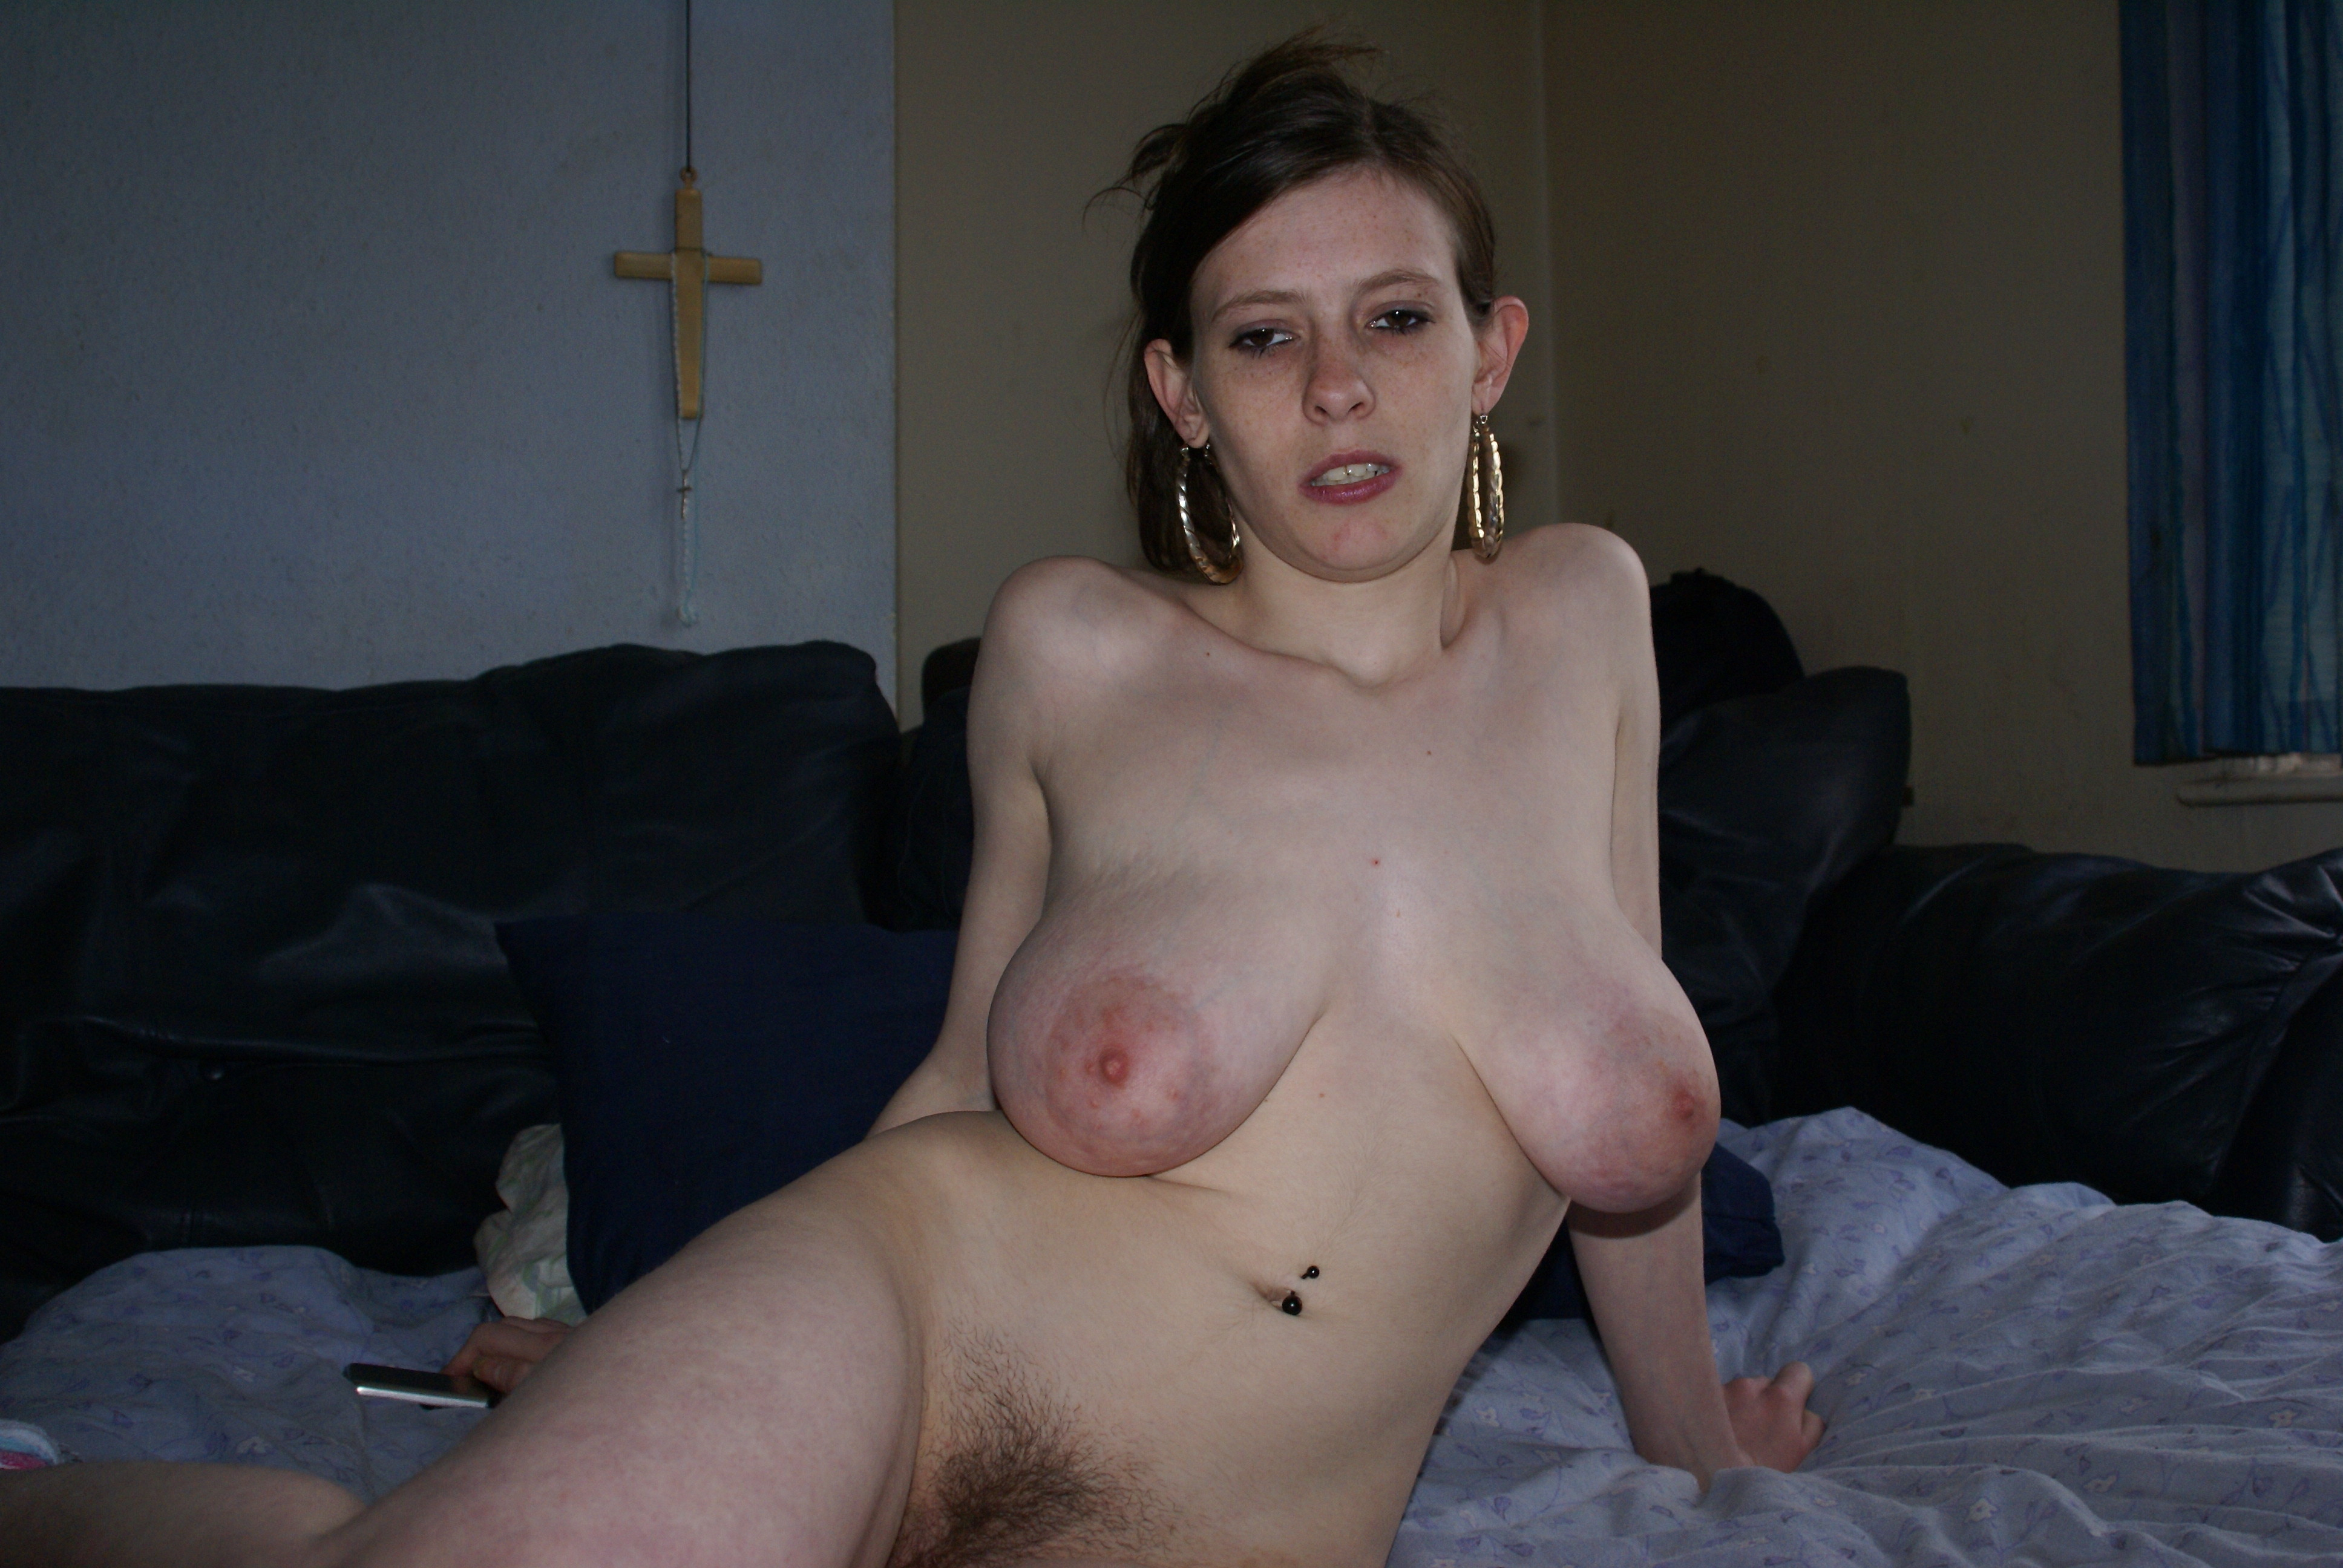 Great amateur movies online